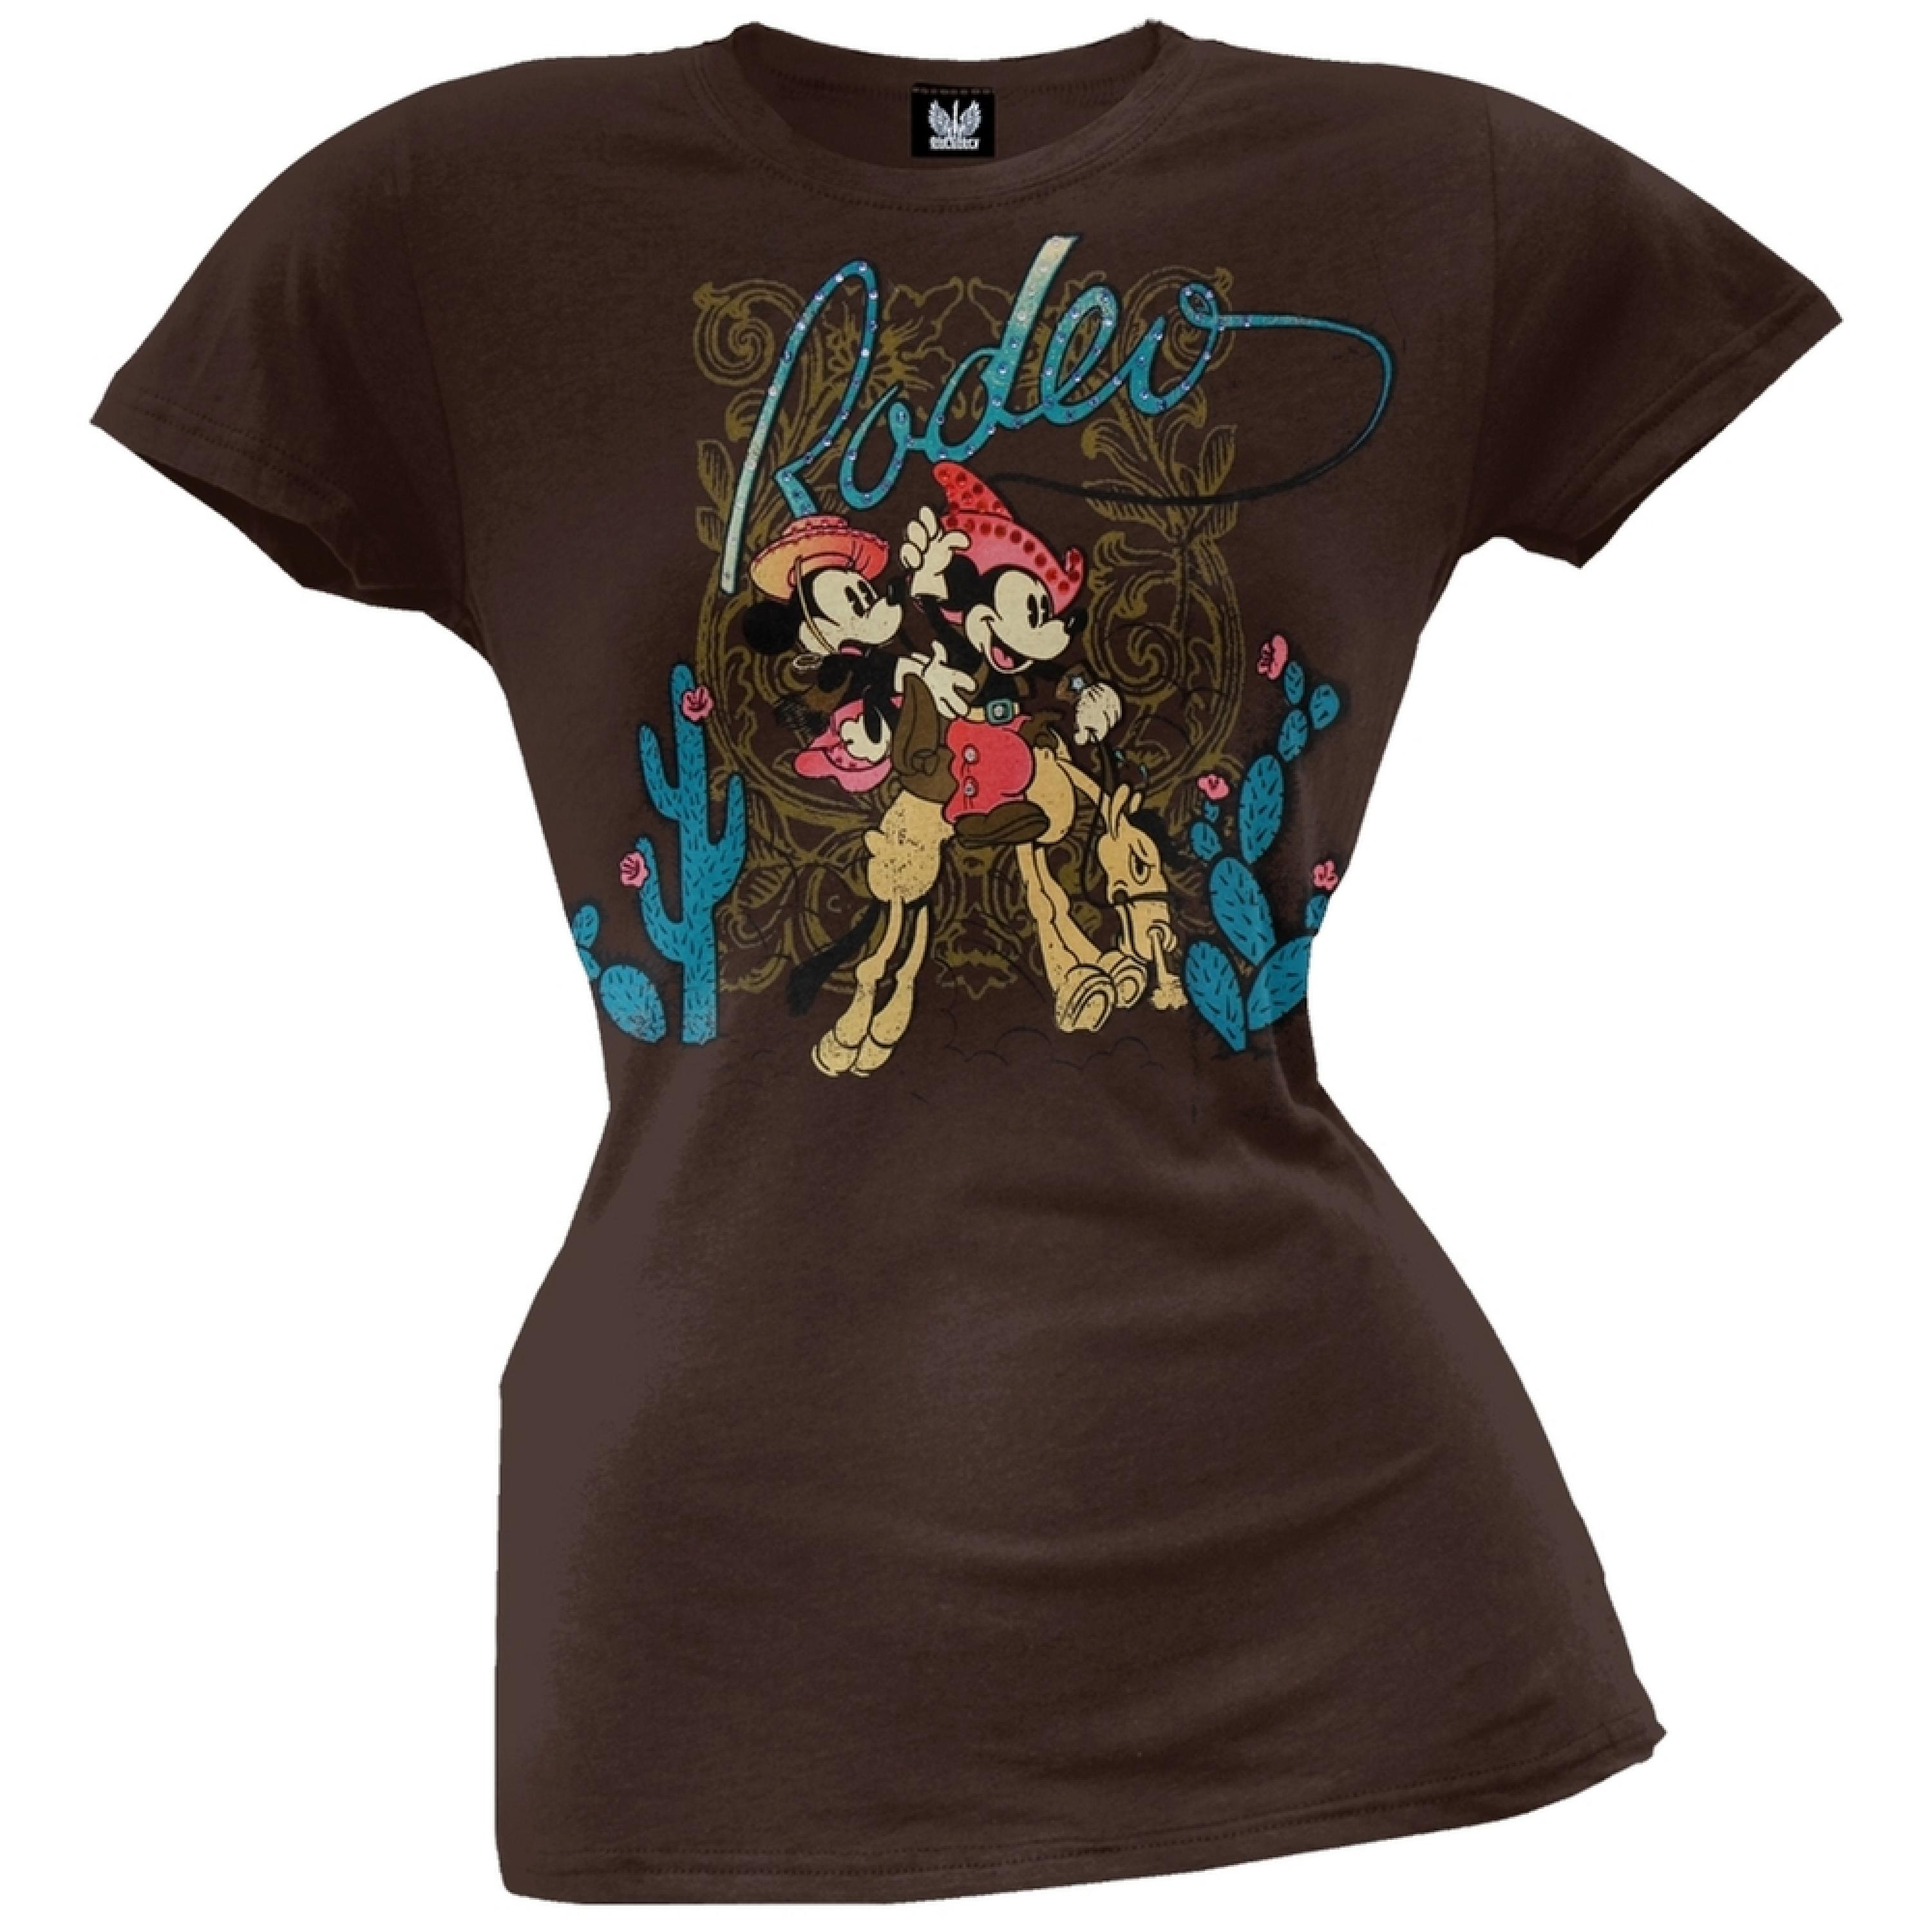 Disney - Rodeo Juniors T-Shirt